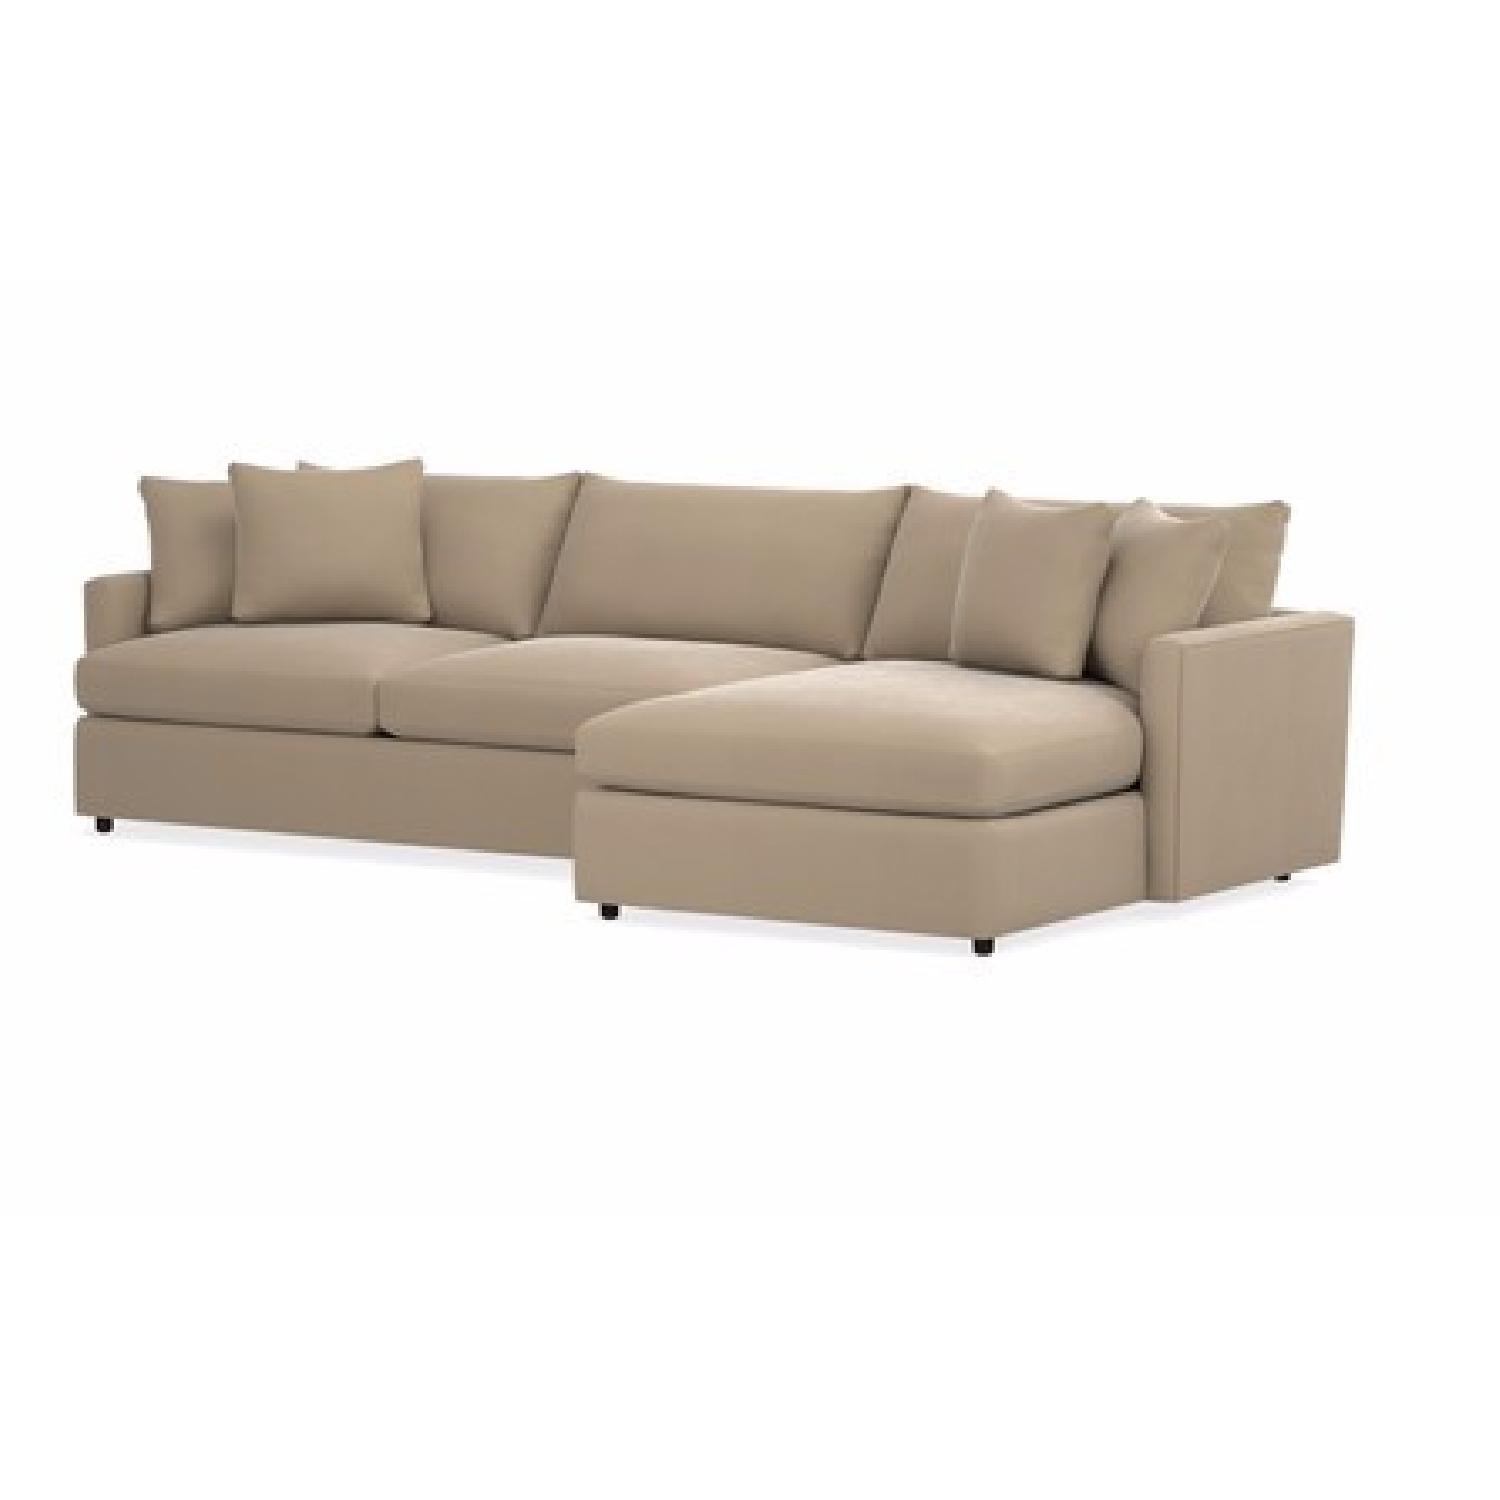 Crate Barrel Lounge II 2 Piece Sectional Sofa AptDeco